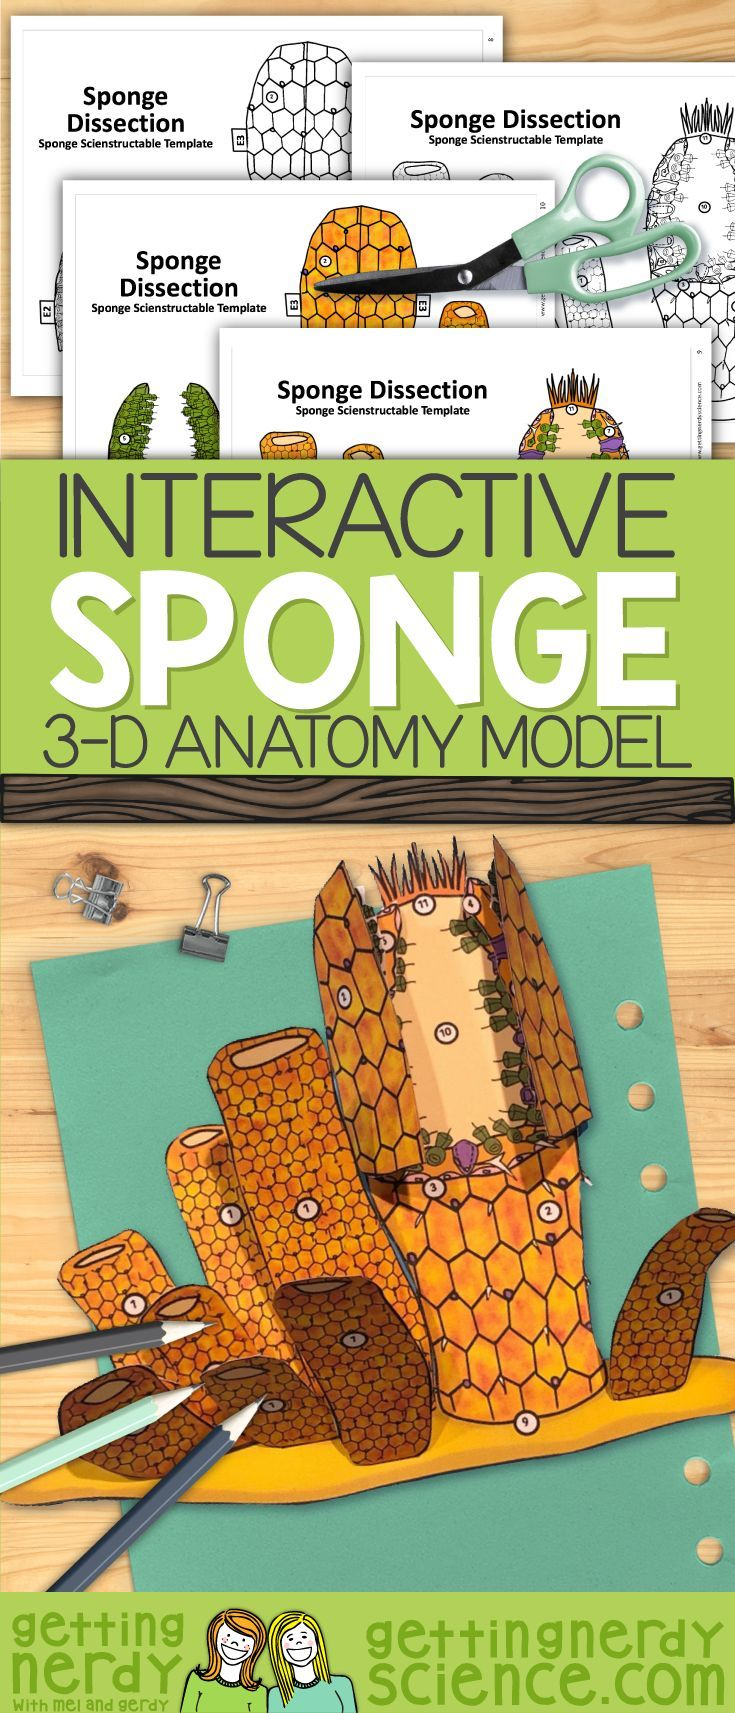 This 3-D Porifera sponge dissection model can be used as a ...